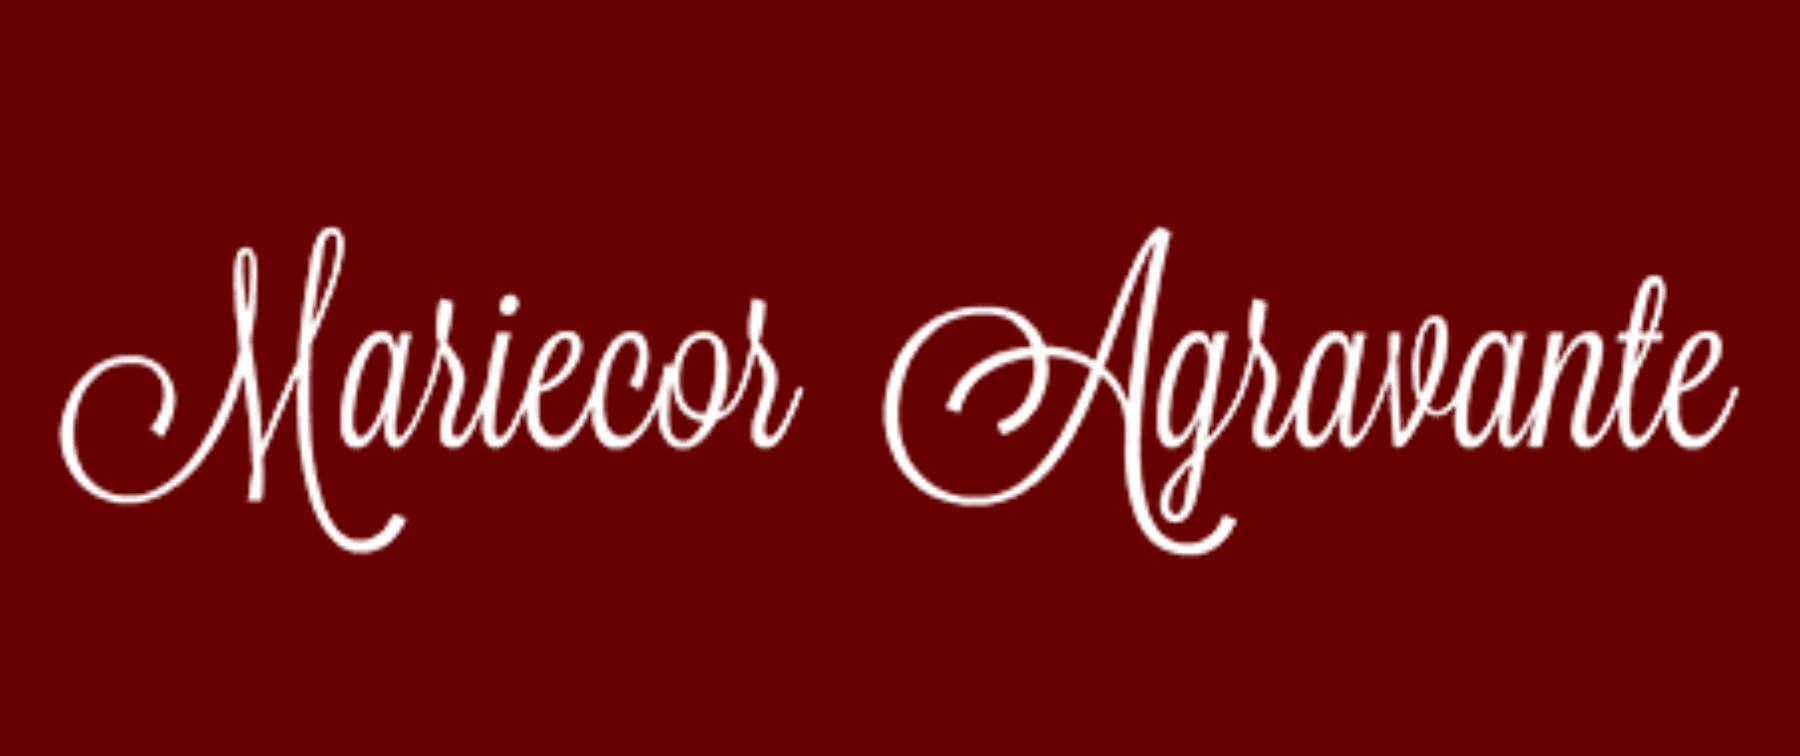 Mariecor Agravante's Signature